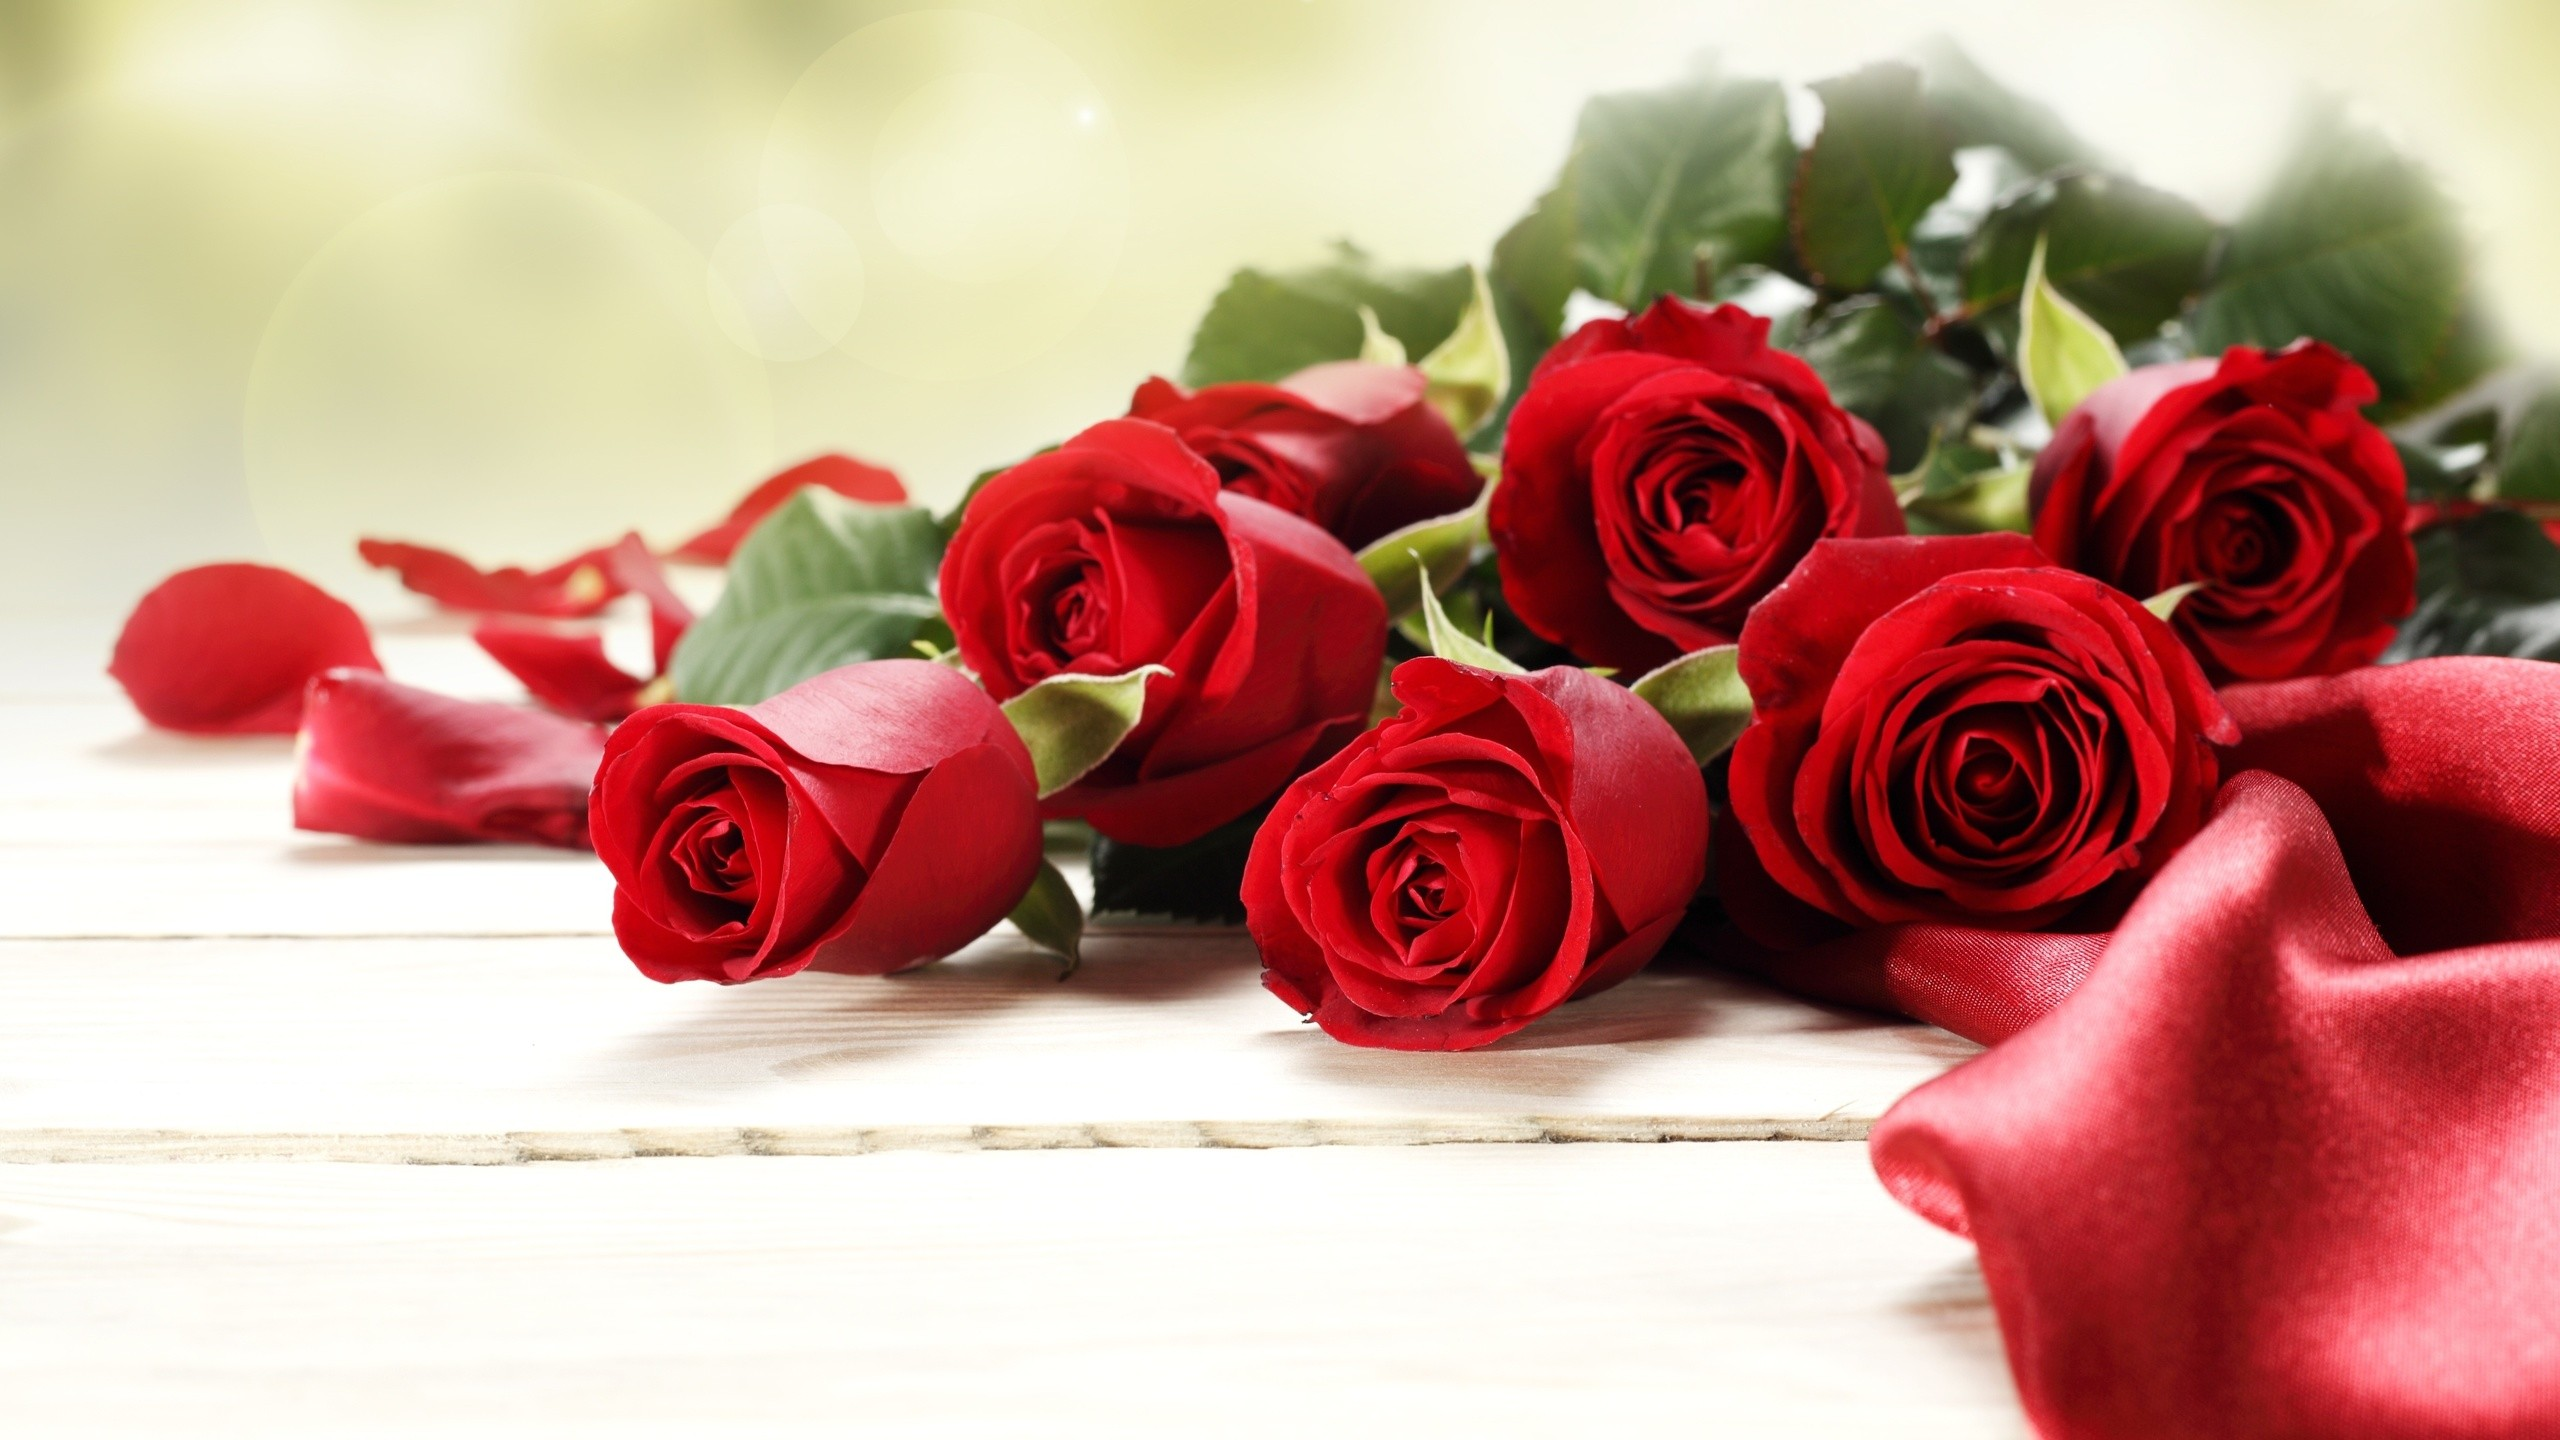 Women's Day Roses hd wallpaper